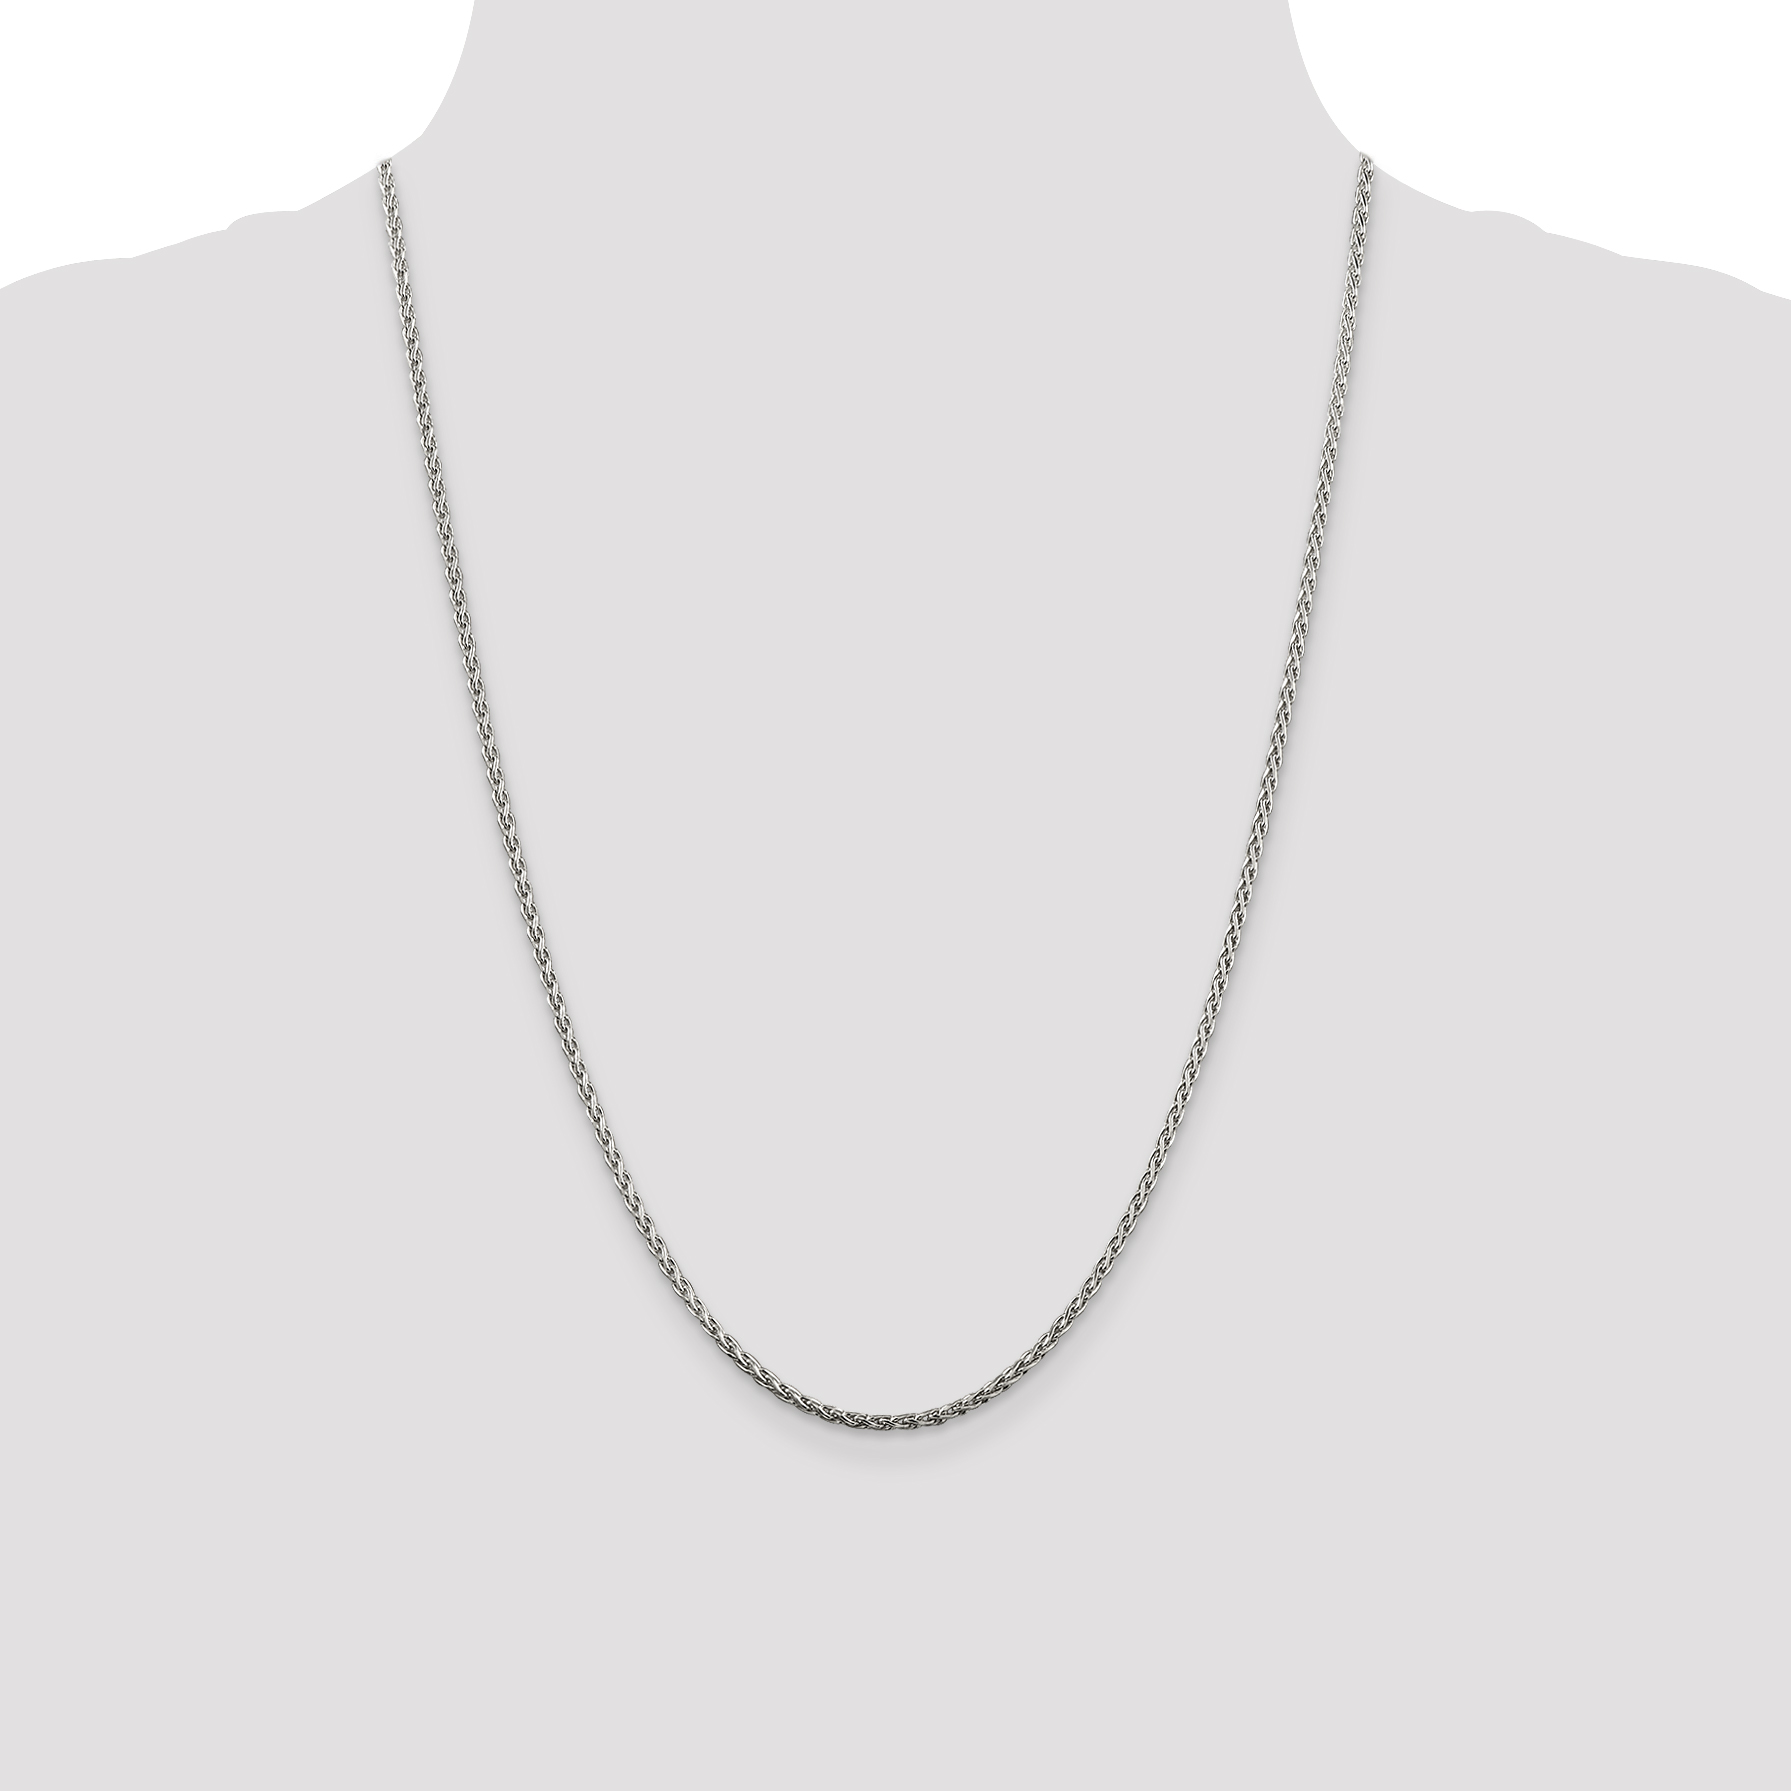 925 Sterling Silver 2mm Spiga Chain Necklace 24 Inch Pendant Charm Wheat Fine Jewelry Gifts For Women For Her - image 2 of 5